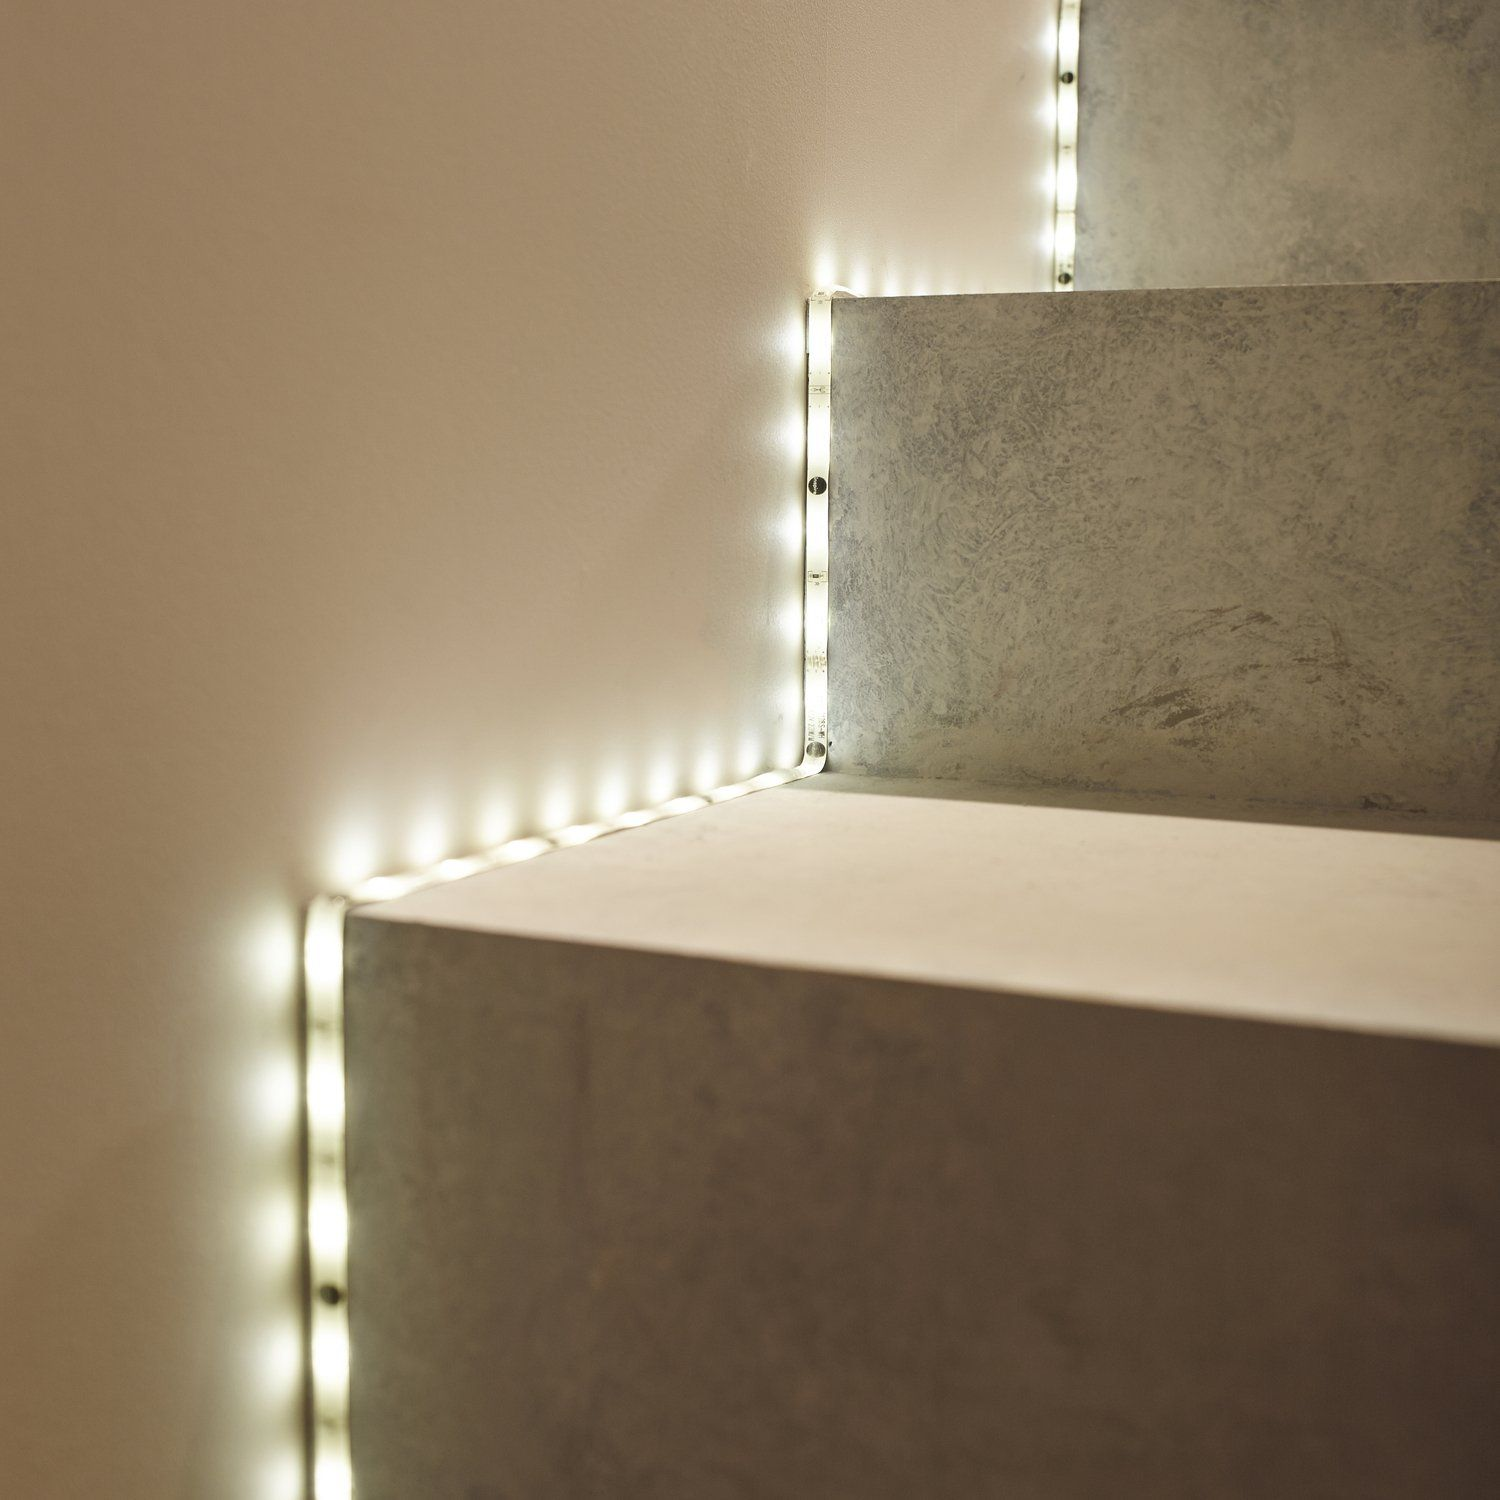 Ruban led qui offre une lumi re d 39 ambiance blanche et for Installer ruban led plafond